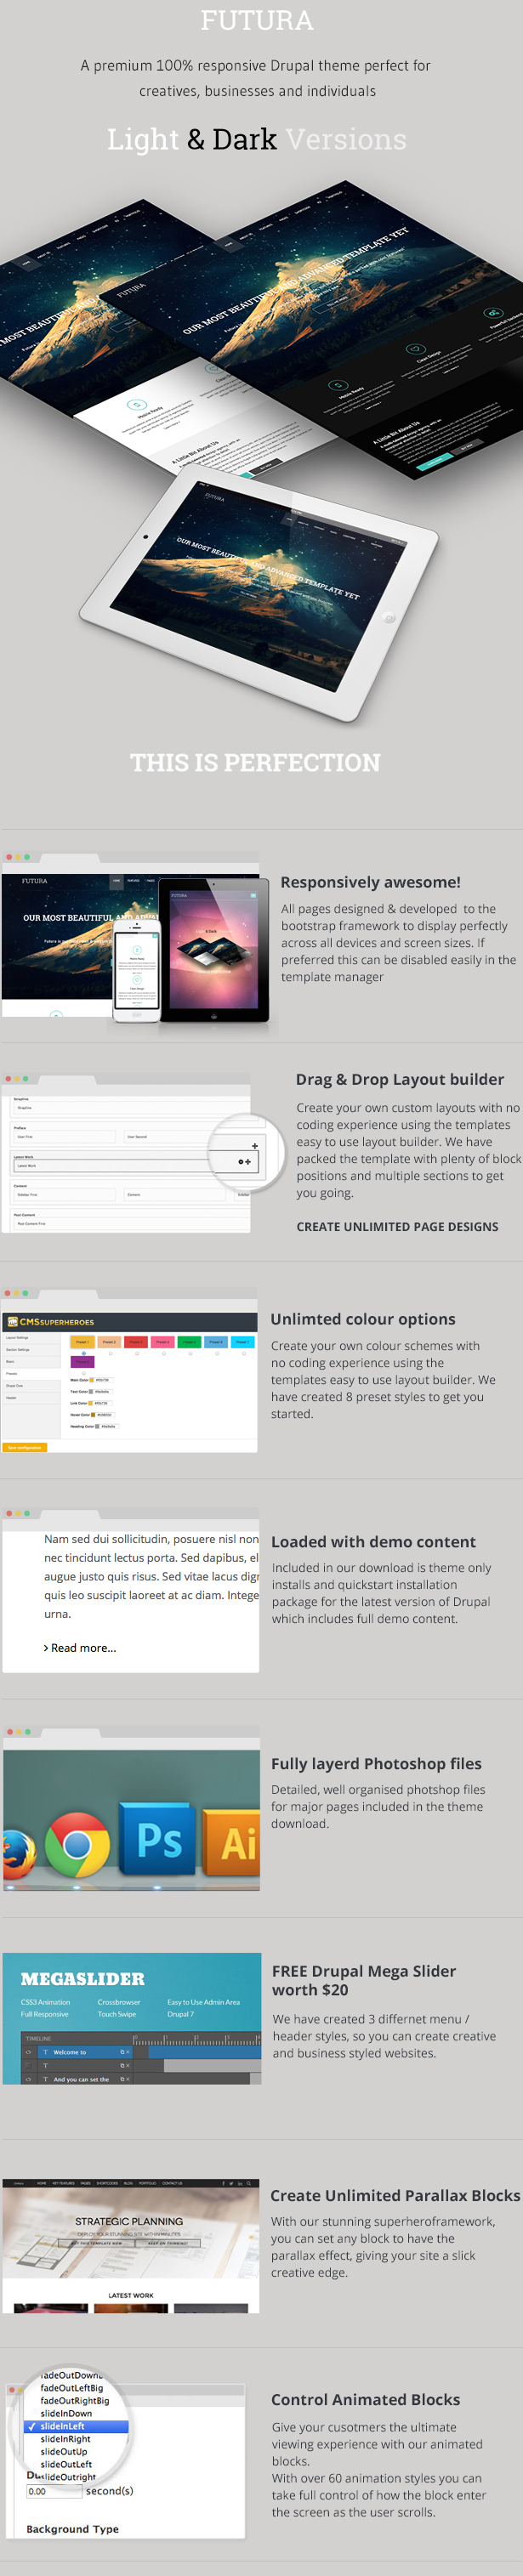 Futura, MultiPurpose Creative Drupal Theme - 1